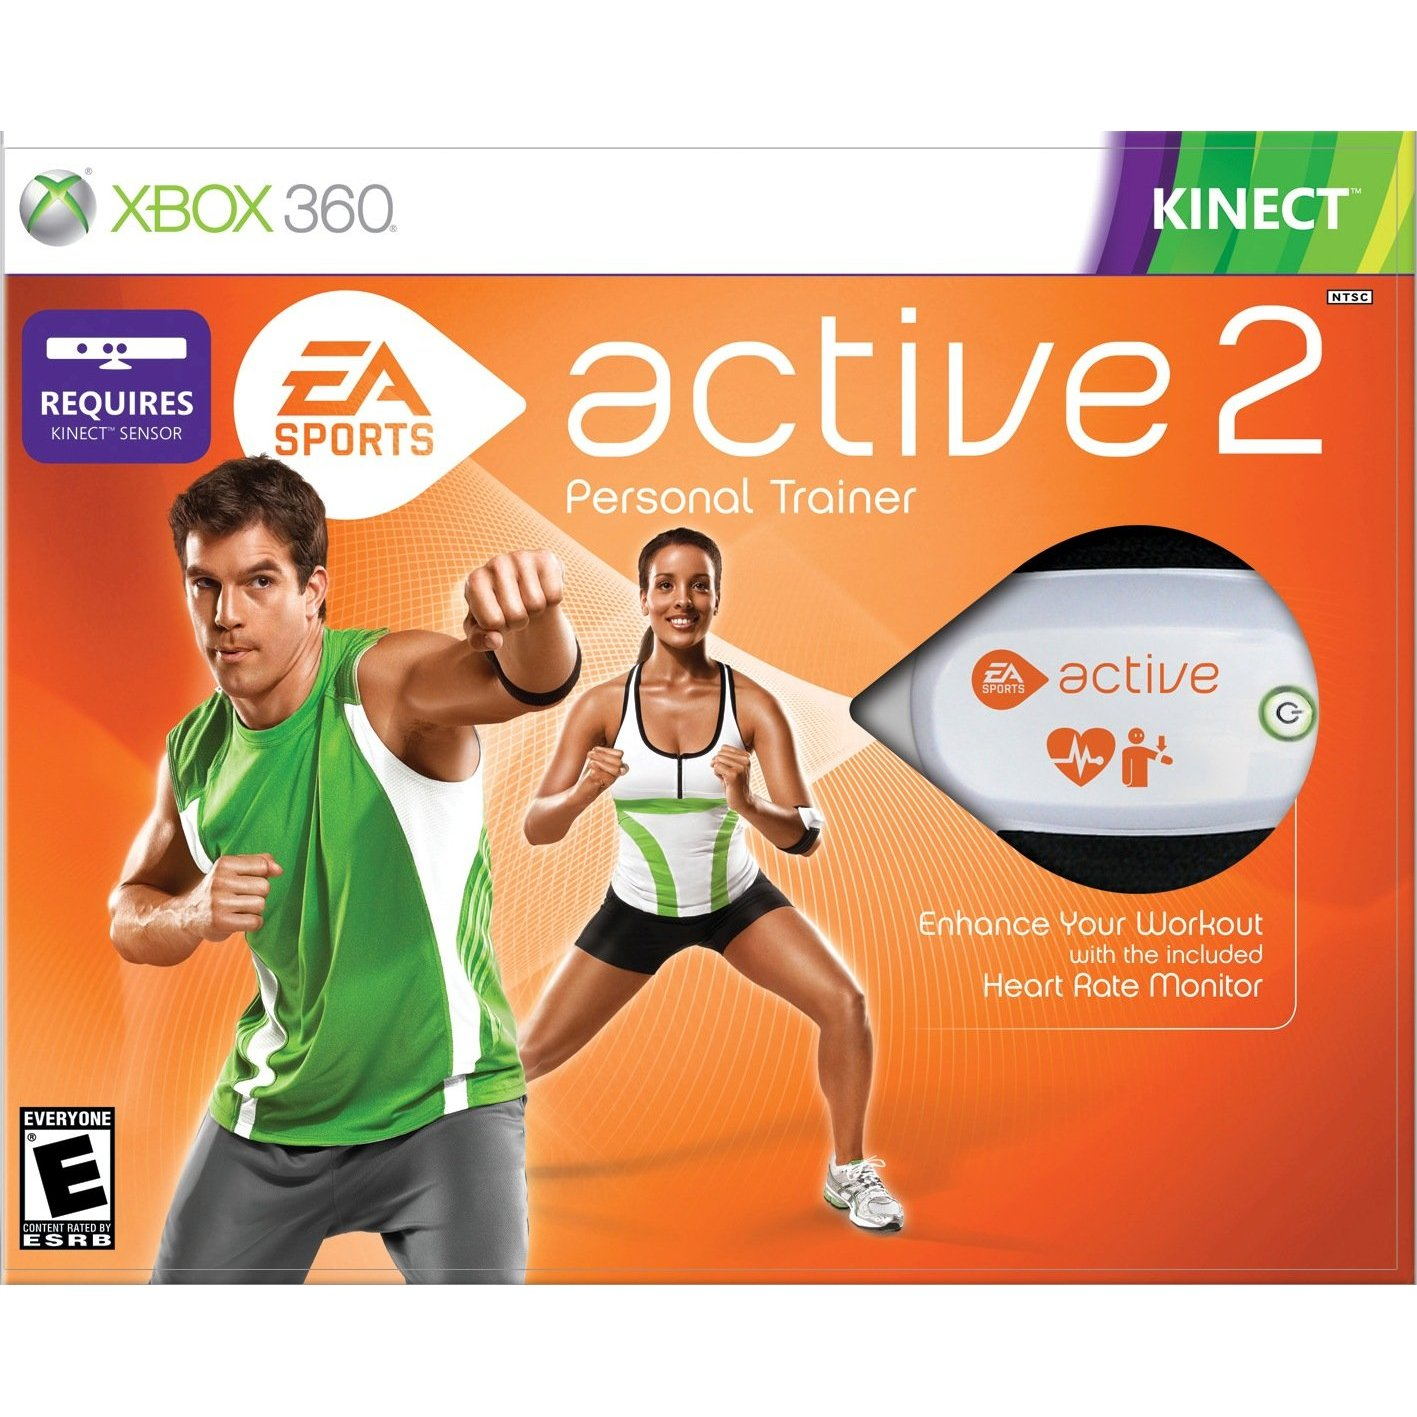 360: ACTIVE 2 (KINECT) (SOFTWARE ONLY) (COMPLETE)